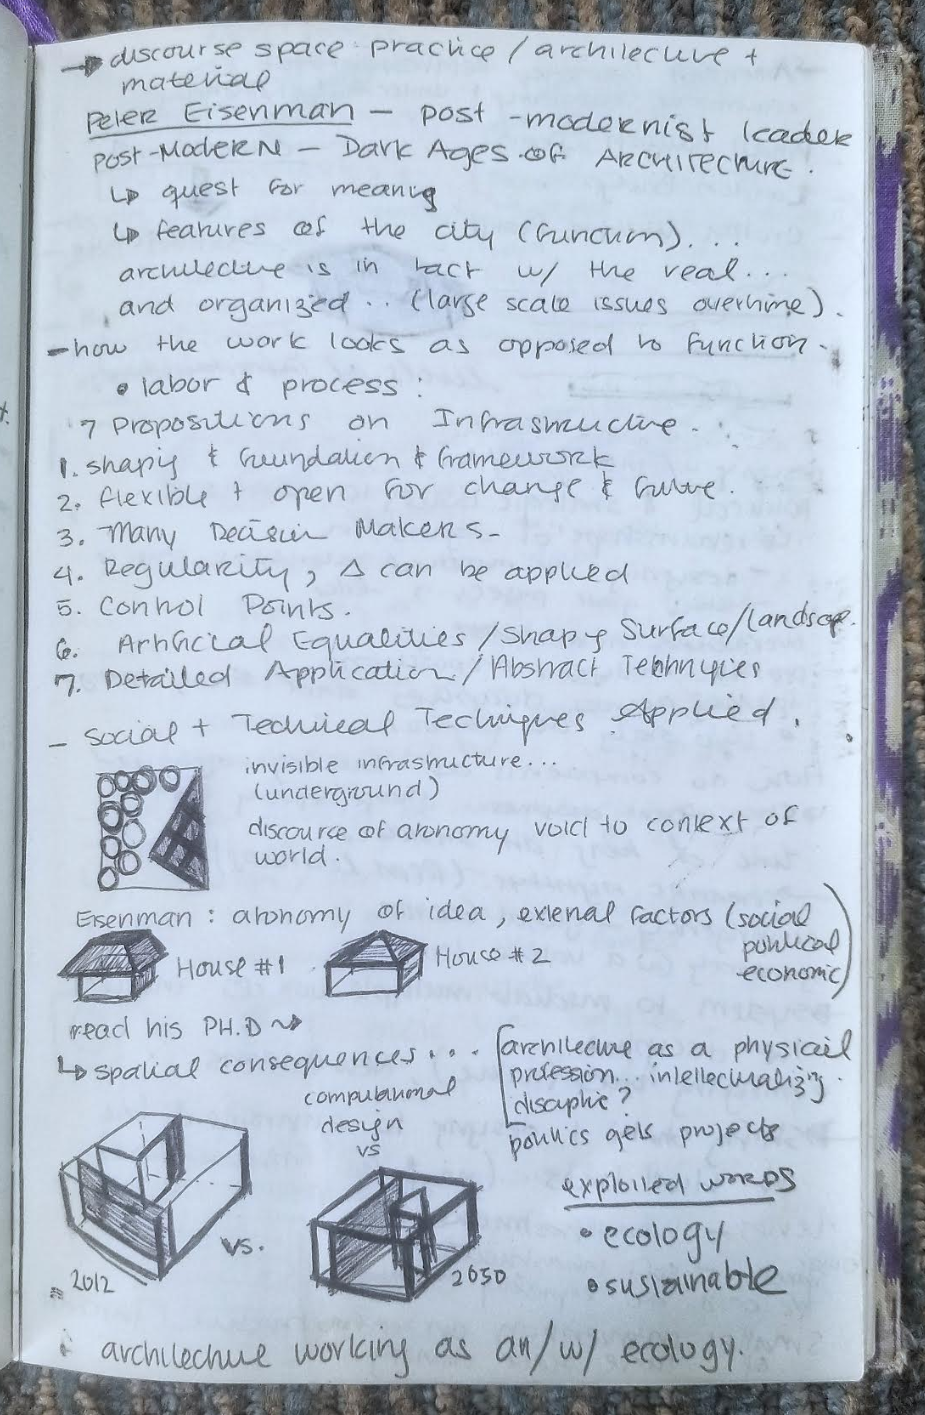 Personal Notes on Peter Eisenman from a theory class at Cornell University (2012)